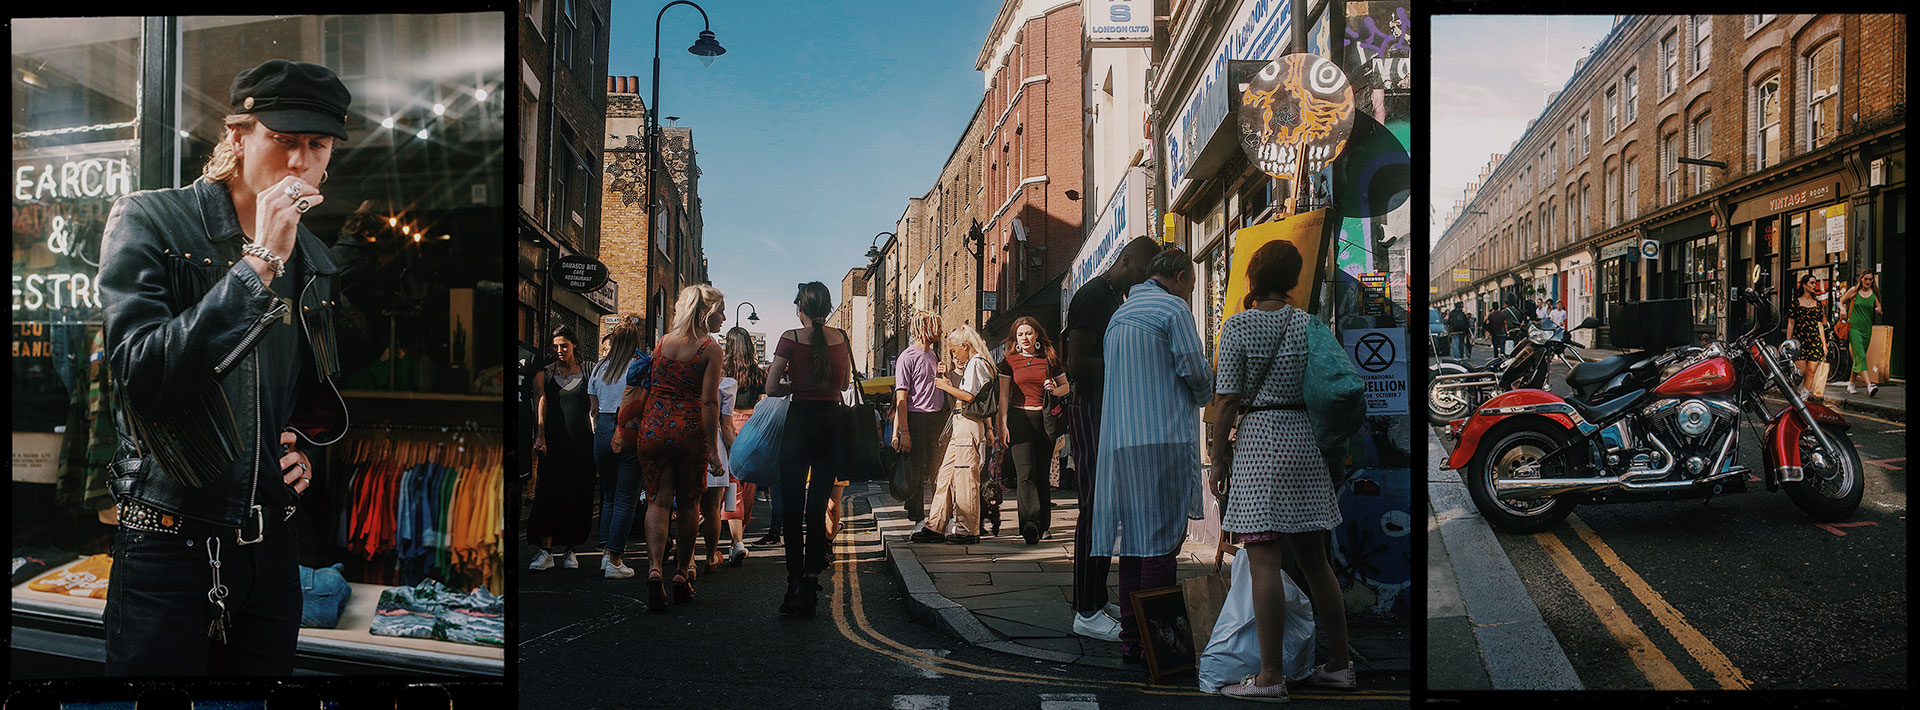 Can't drop by London without a *Brick Lane appreciation post*, right?